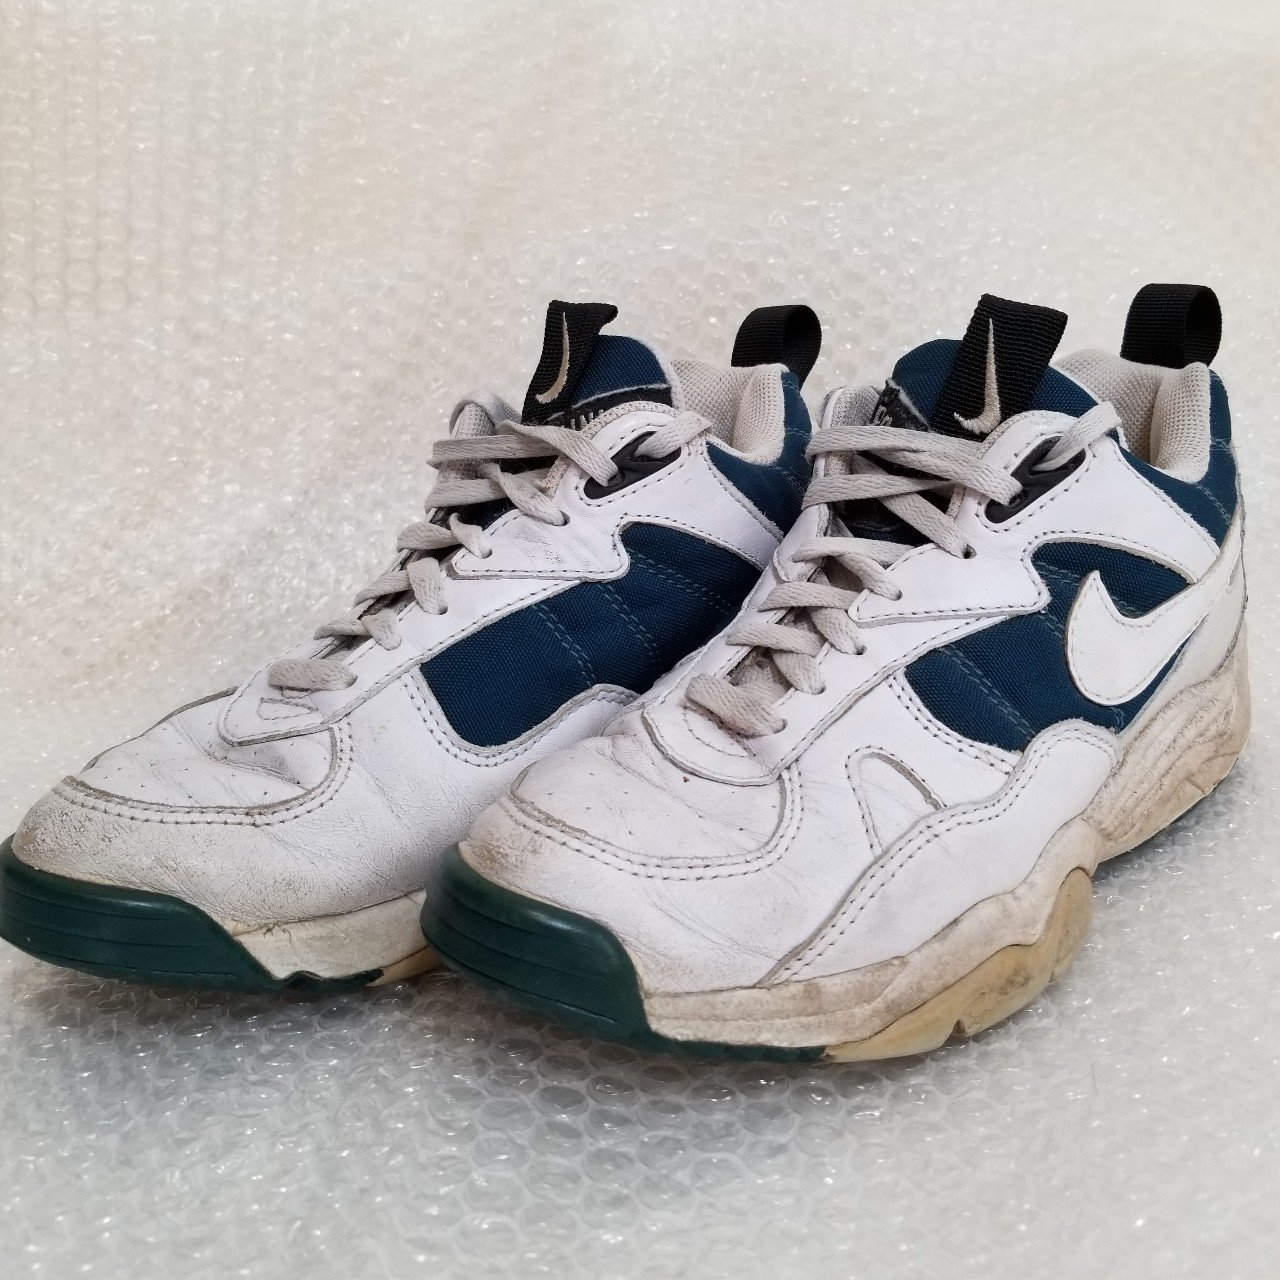 1338f3c566 Vintage 90s Nike Air Coss Training tennis shoes. These are a - Depop